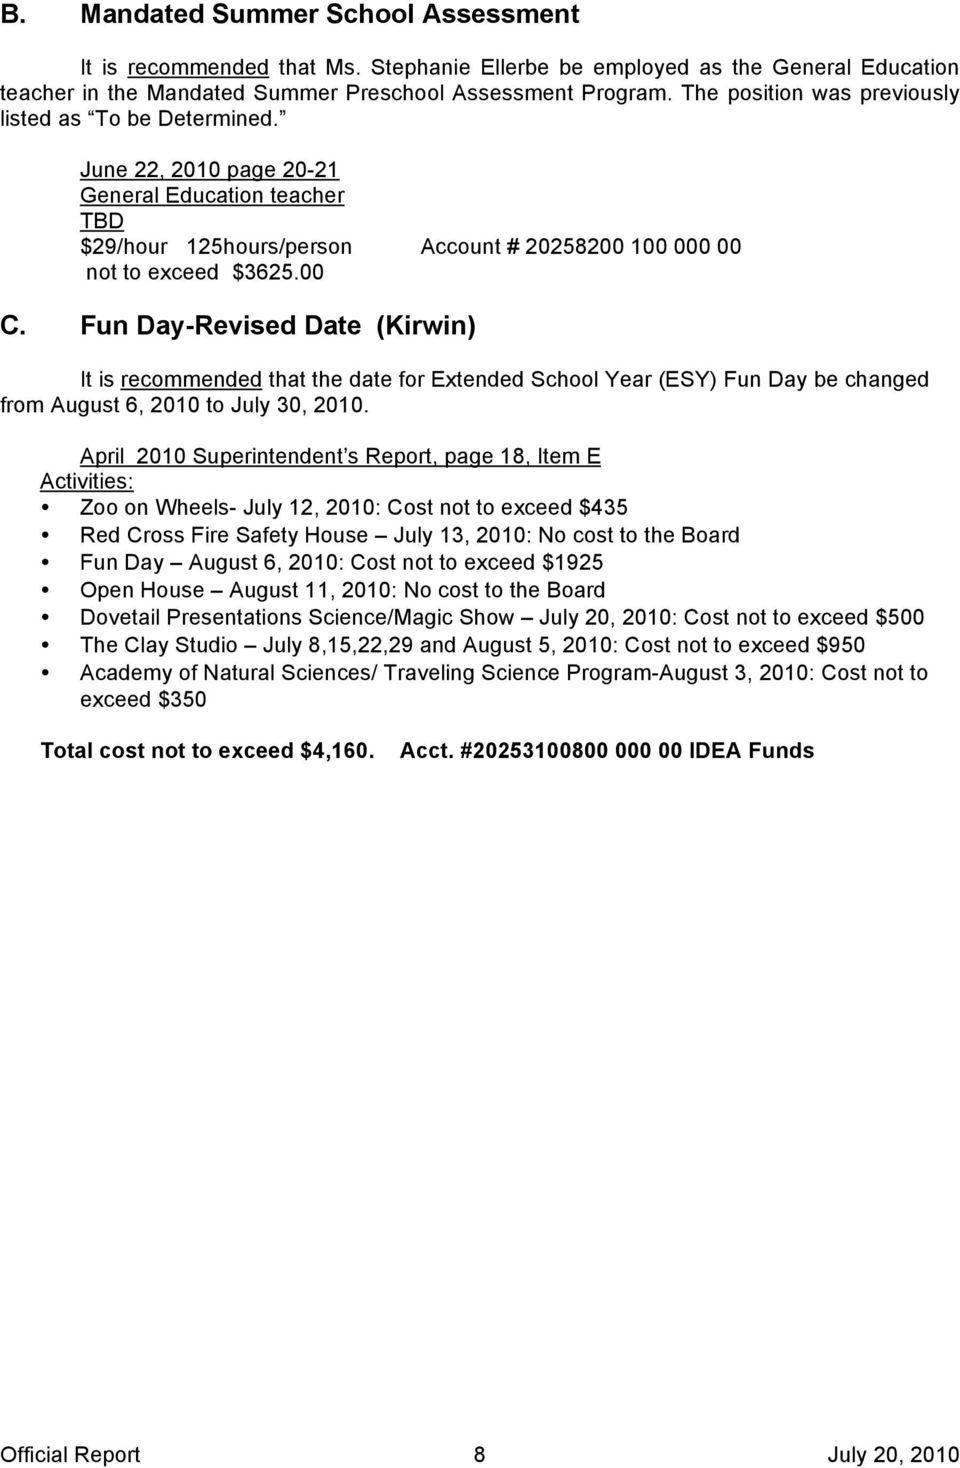 Fun Day-Revised Date (Kirwin) It is recommended that the date for Extended School Year (ESY) Fun Day be changed from August 6, 2010 to July 30, 2010.